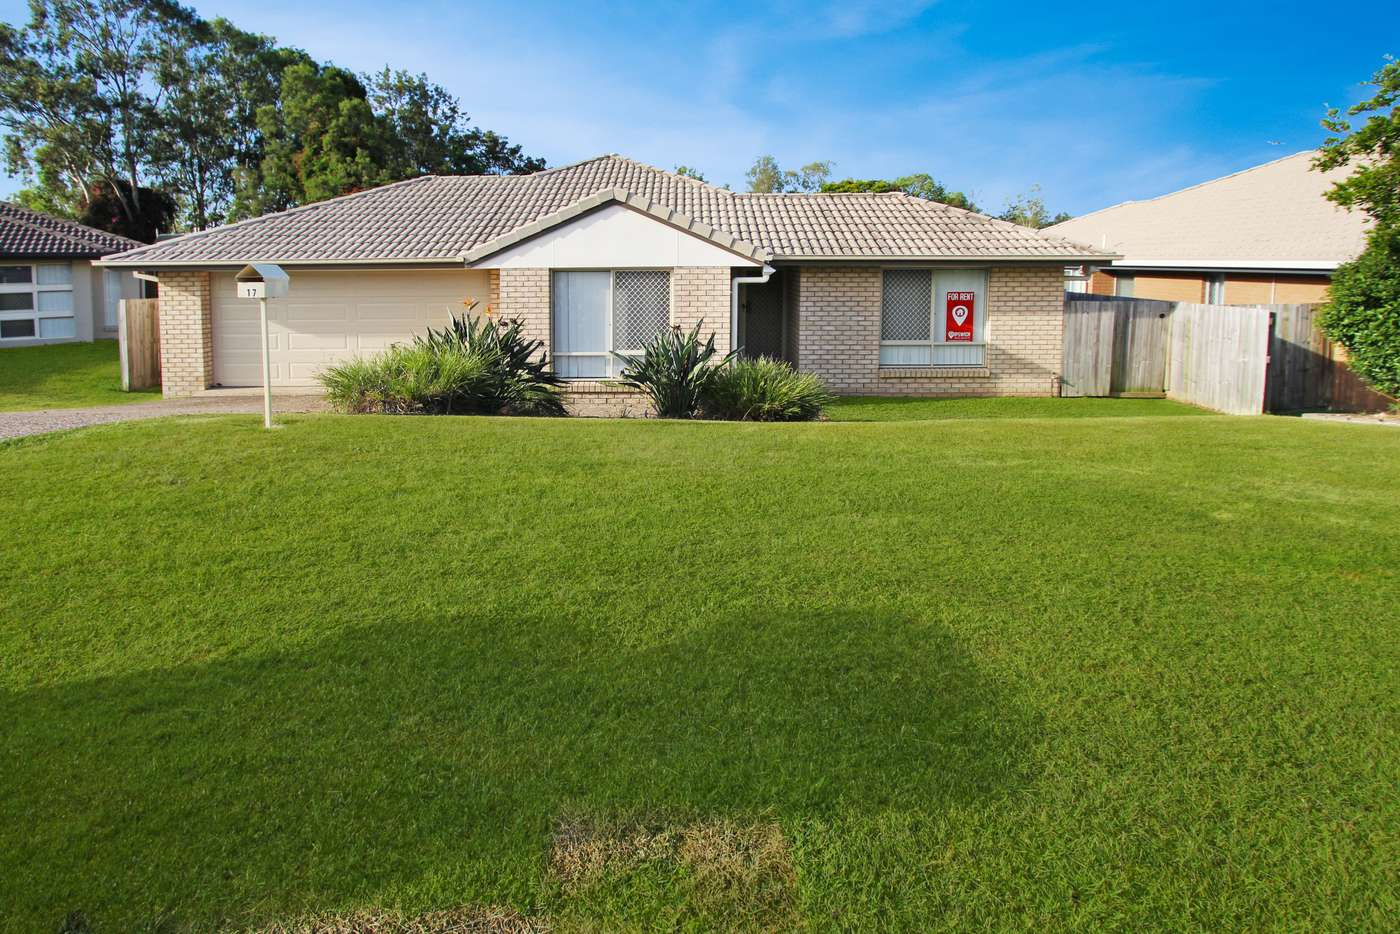 Main view of Homely house listing, 17 Chanel Court, Wulkuraka QLD 4305